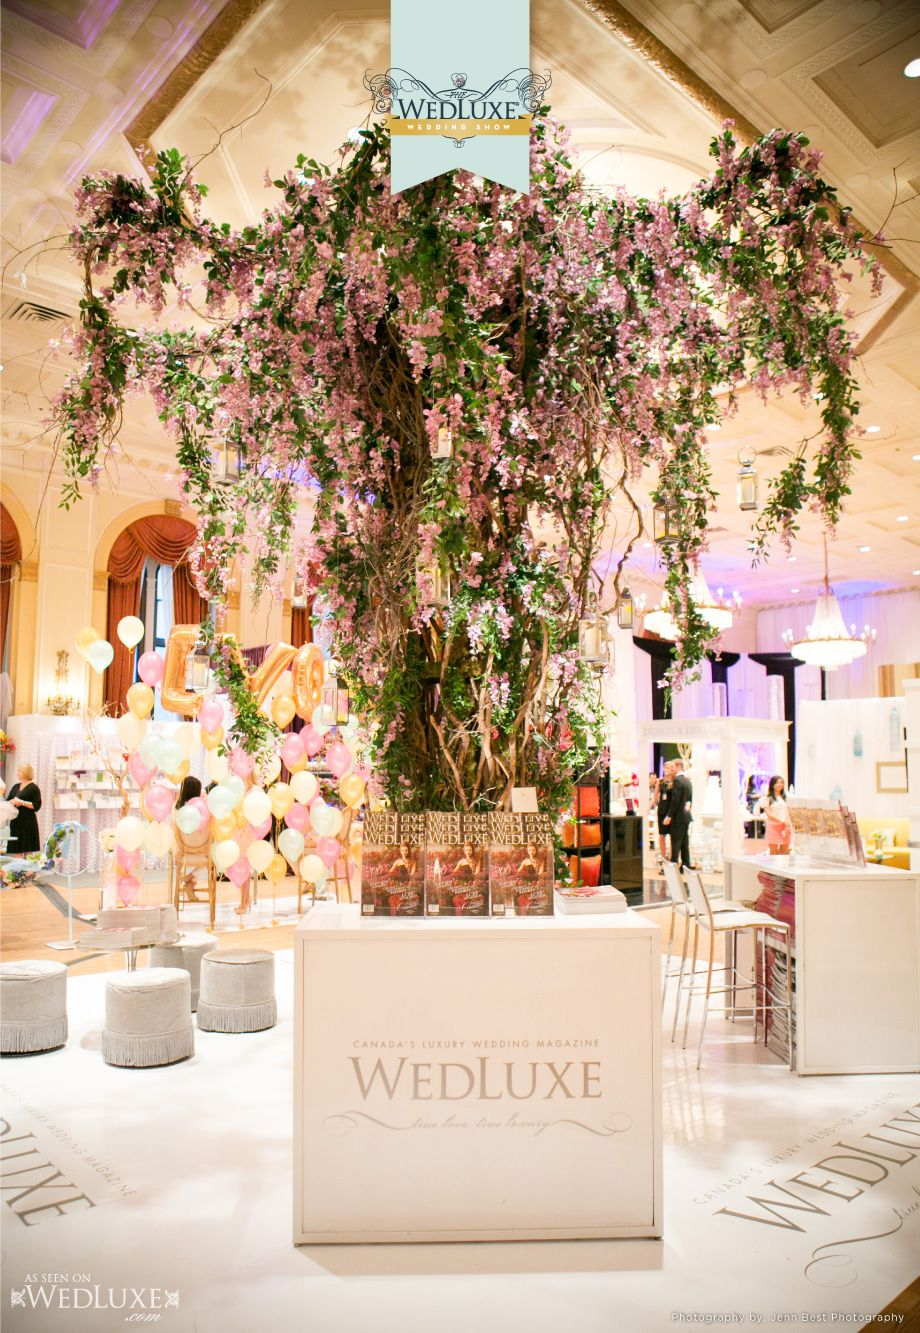 WedLuxe Magazine......Oh my gorgeous!